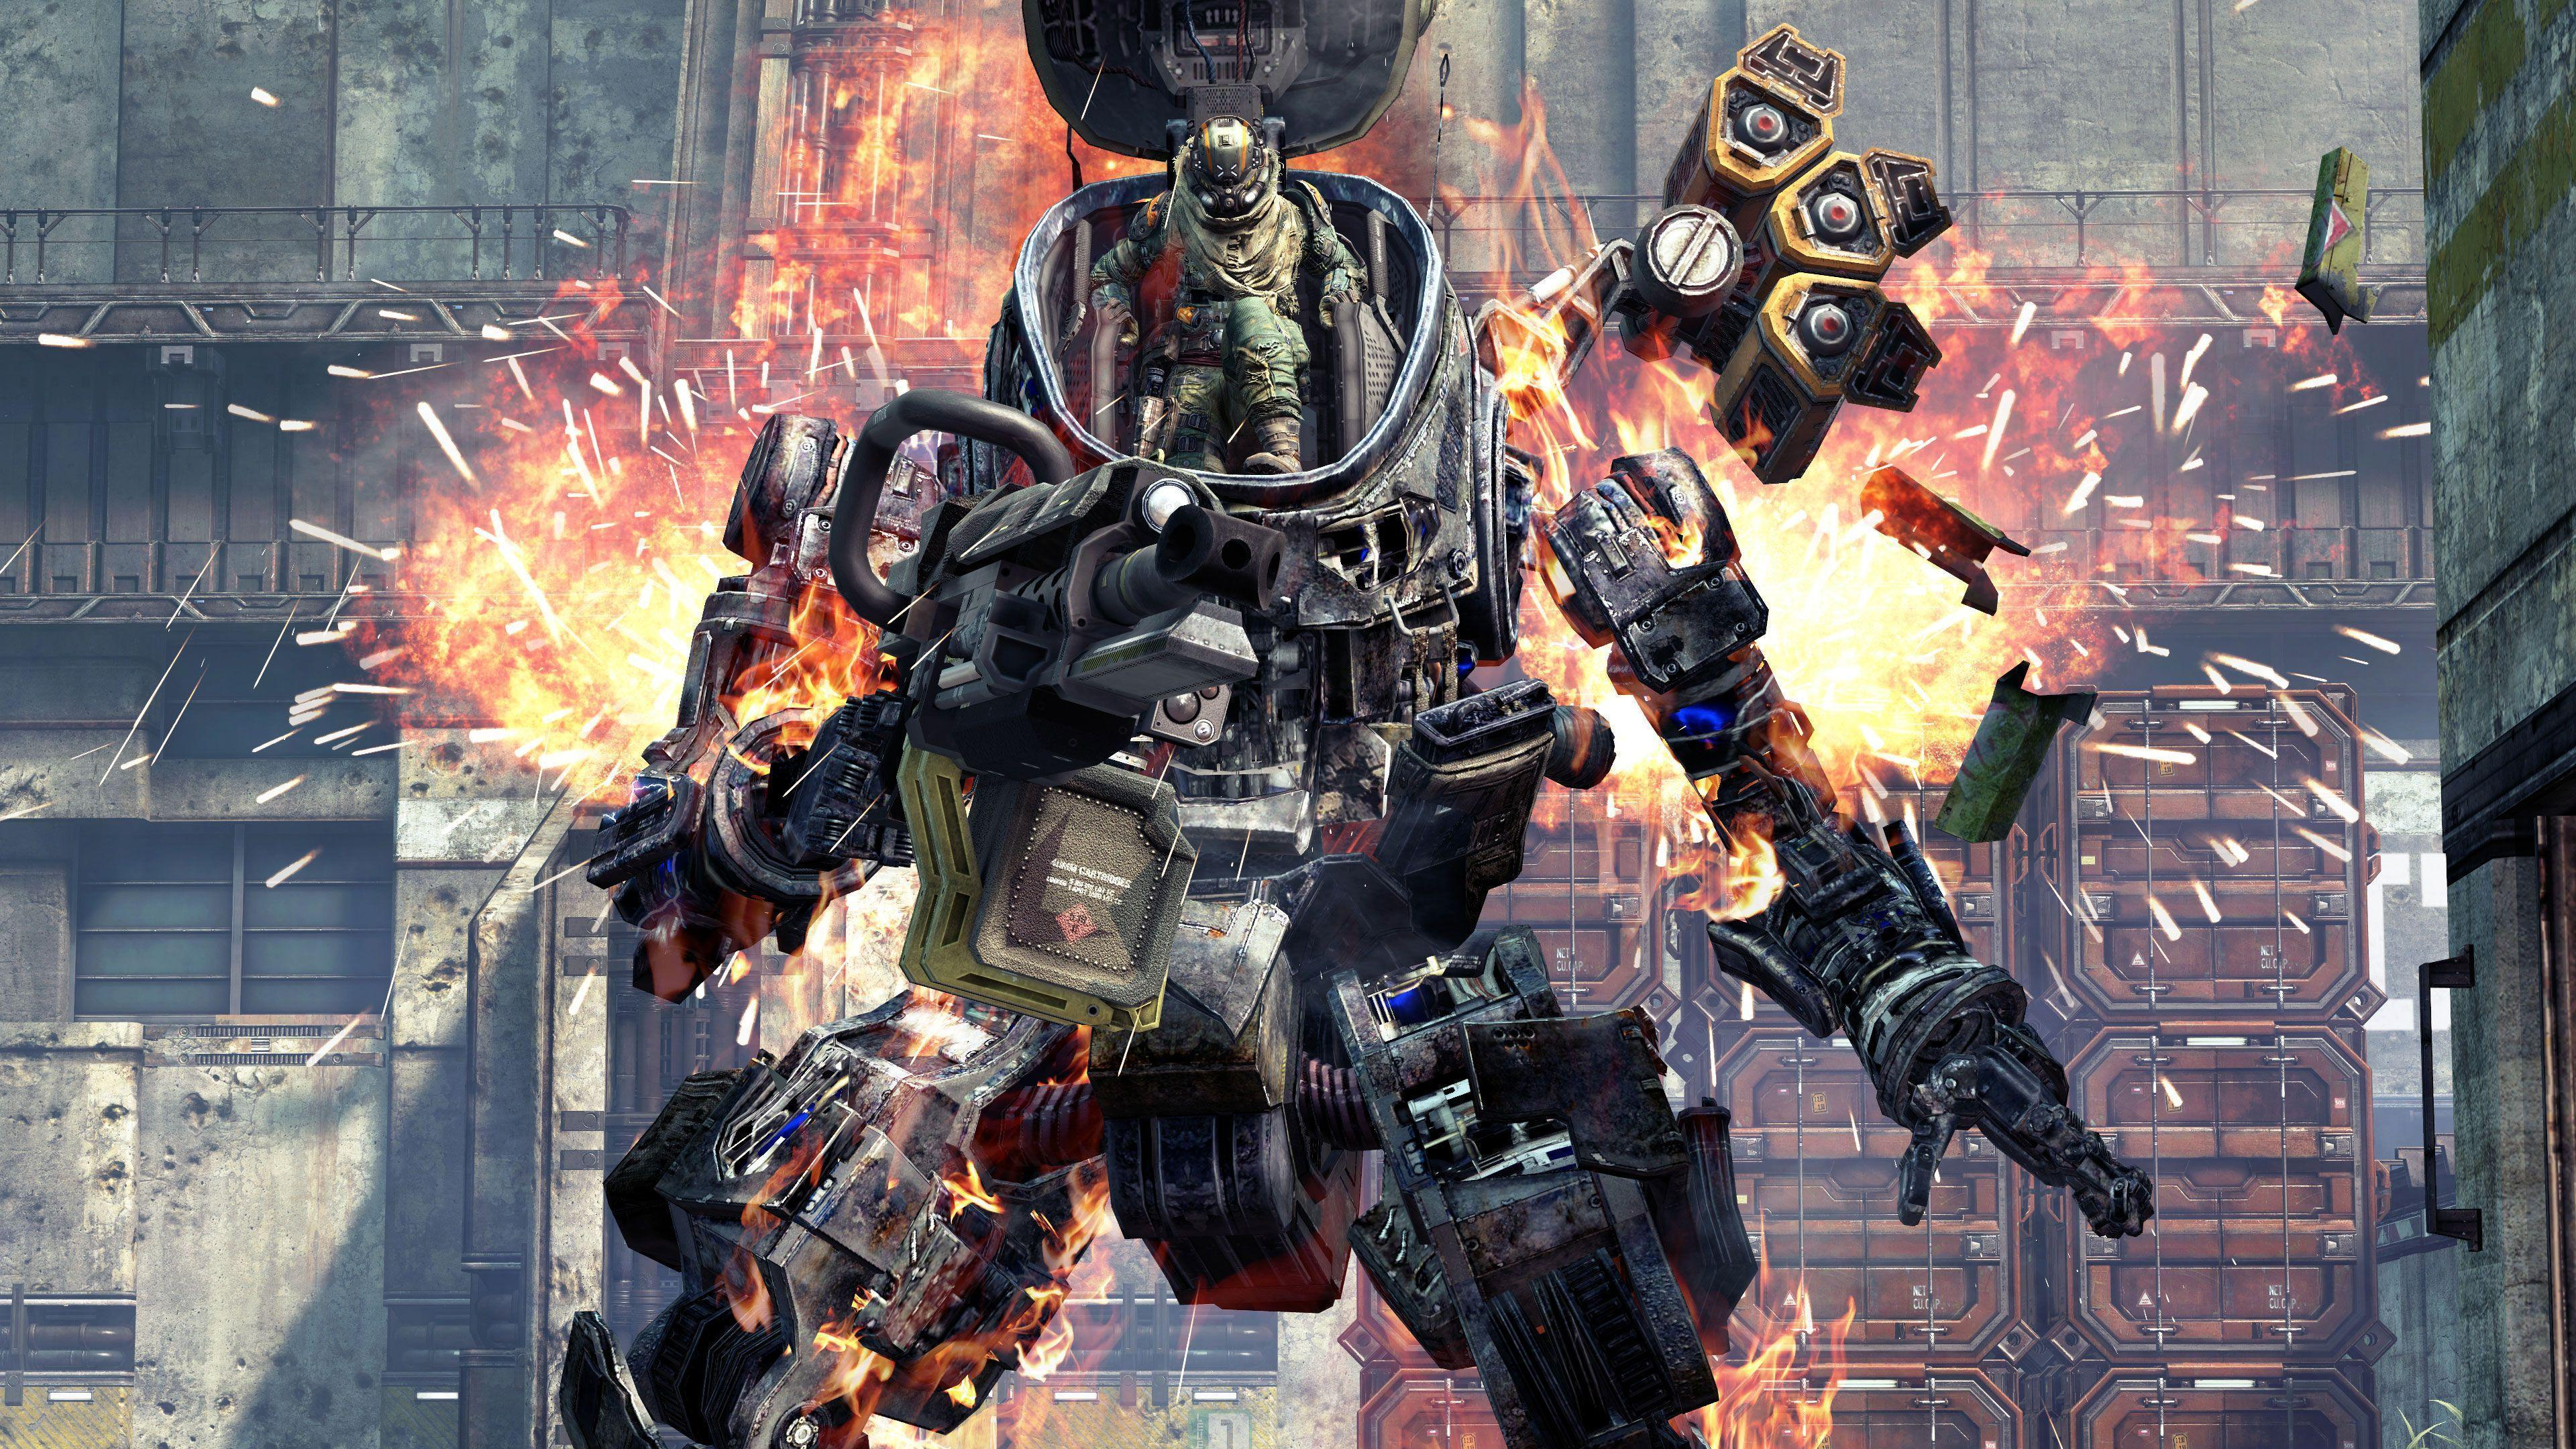 Wallpapers Titanfall 2, 4K, PC, Xbox, PS4, Games,